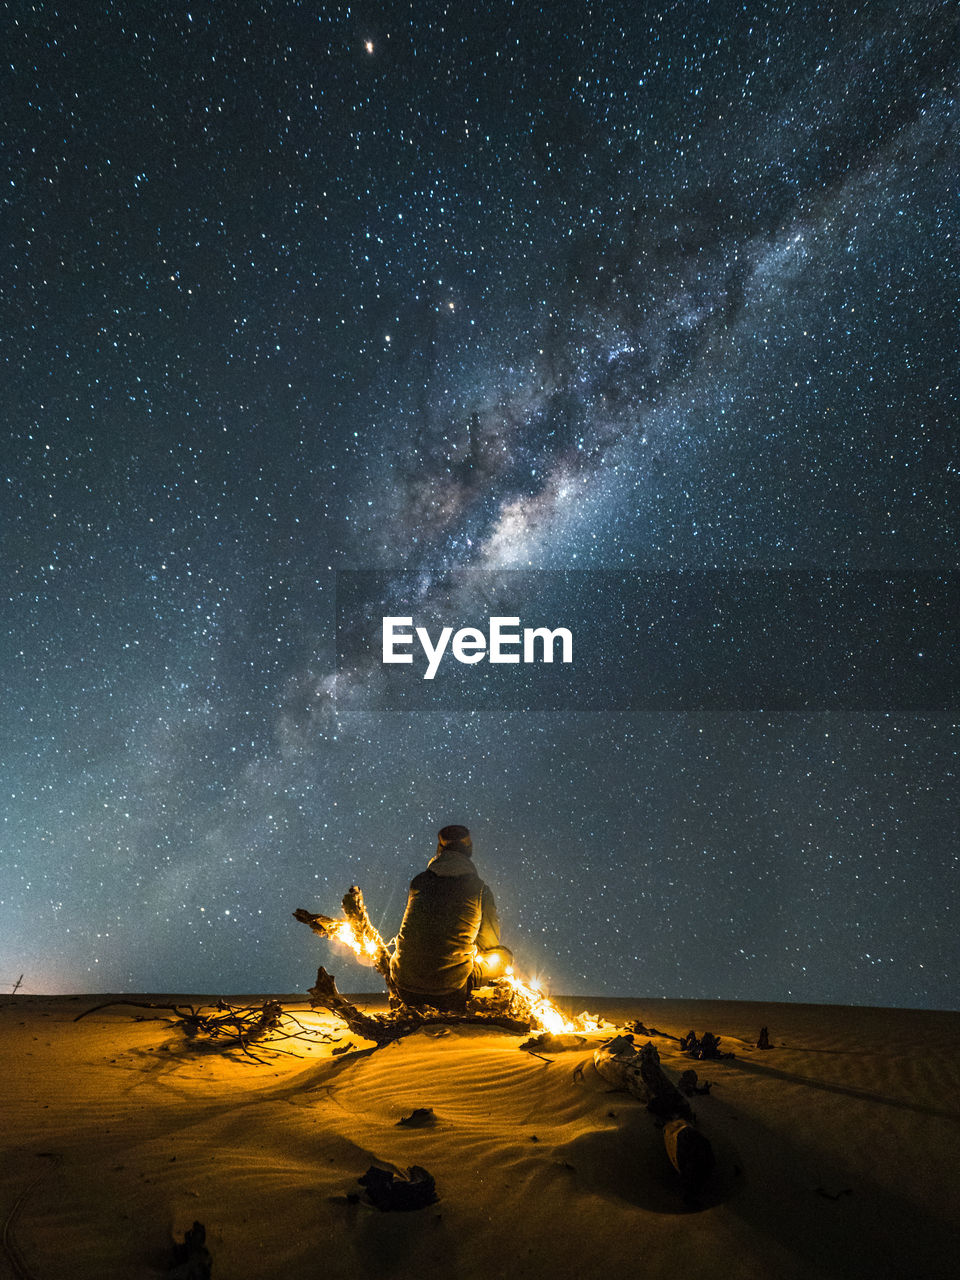 Rear View Of Man With Illuminated String Lights Sitting On Sand At Desert Against Star Field At Night